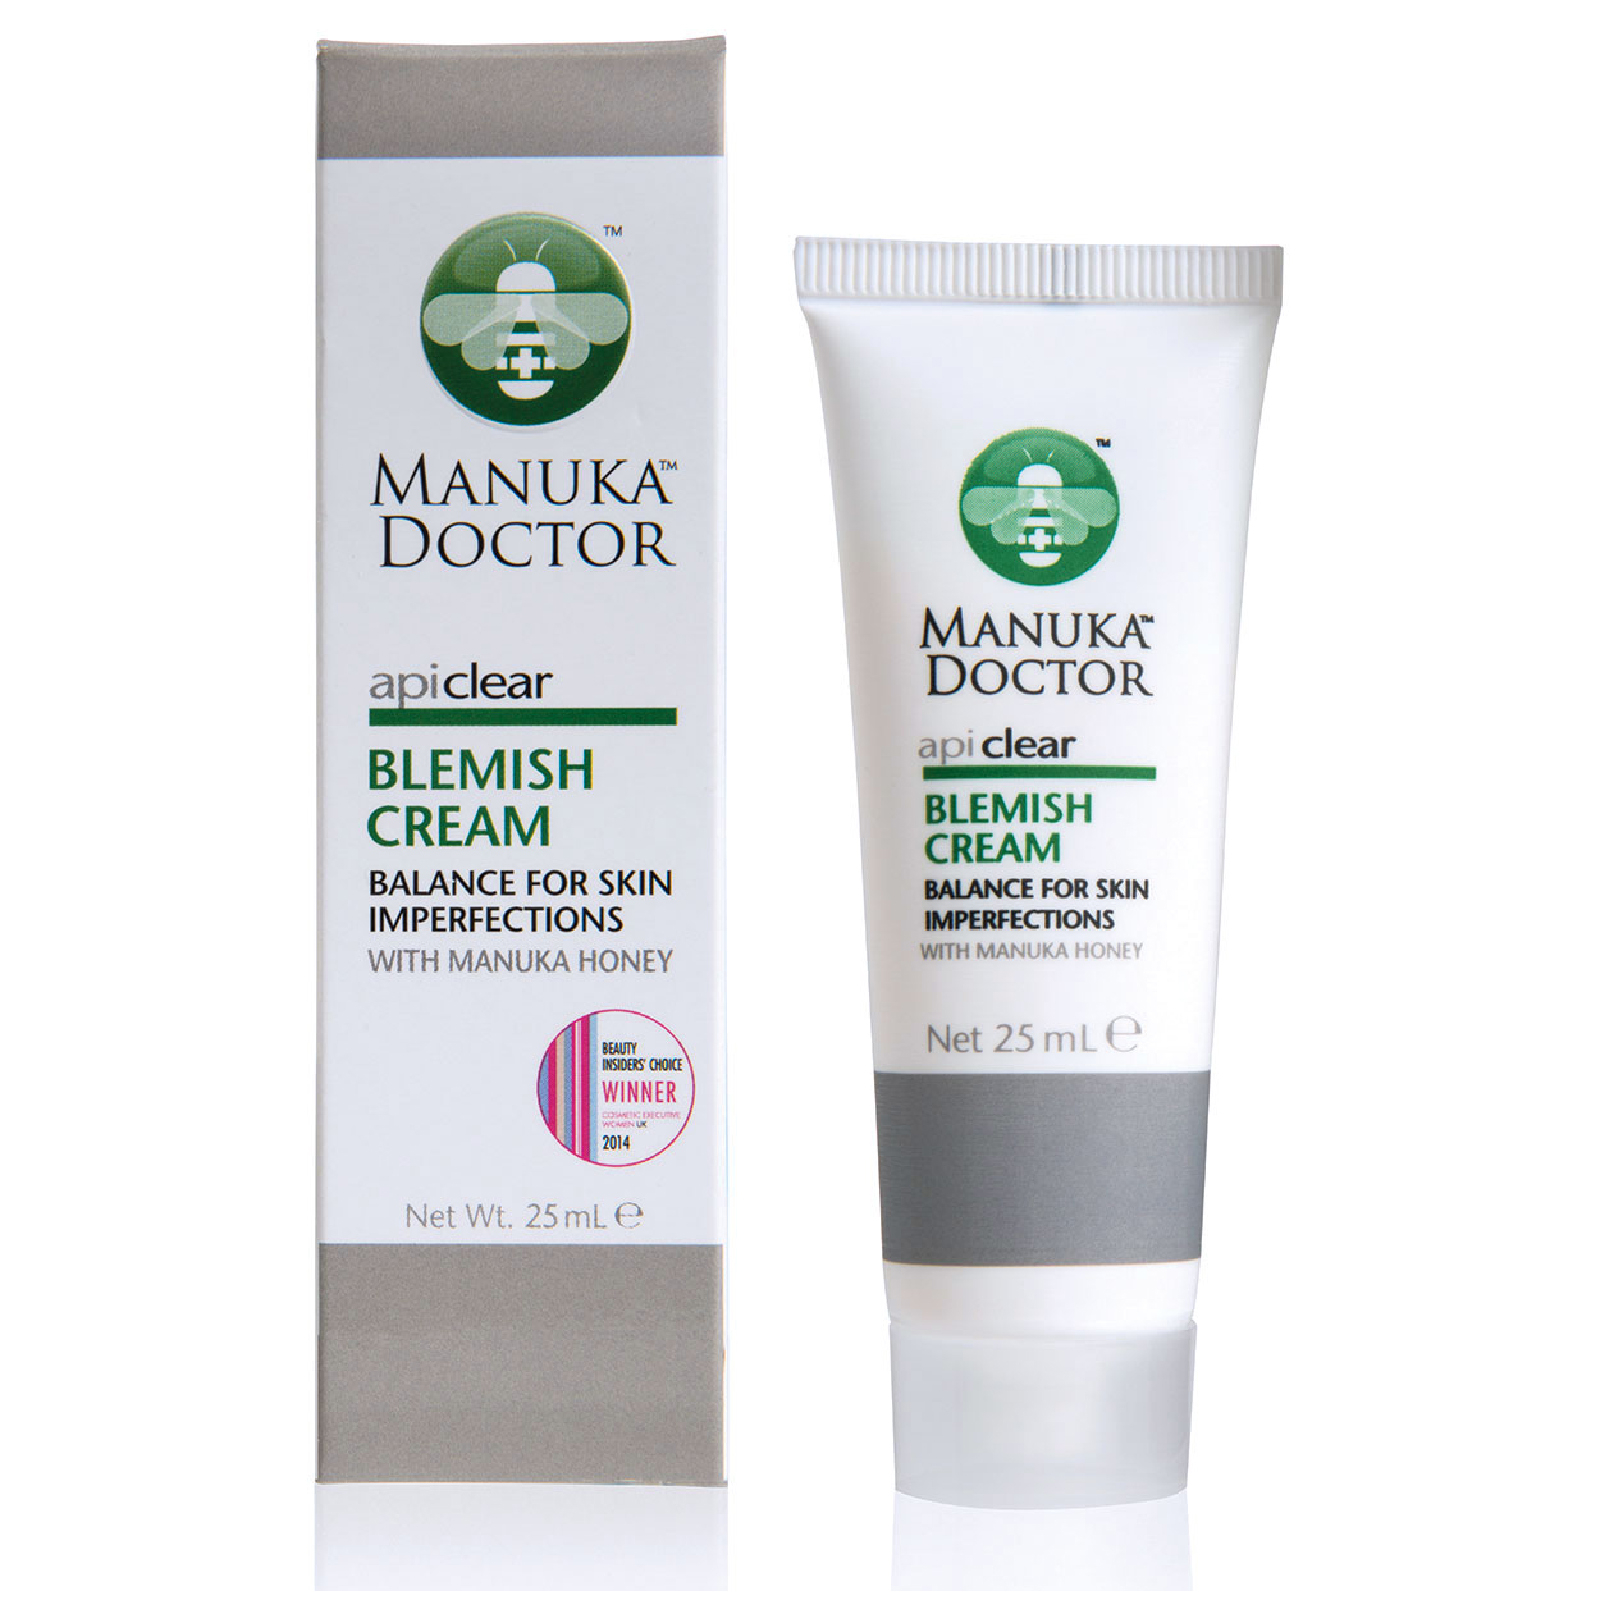 blemish skin care products